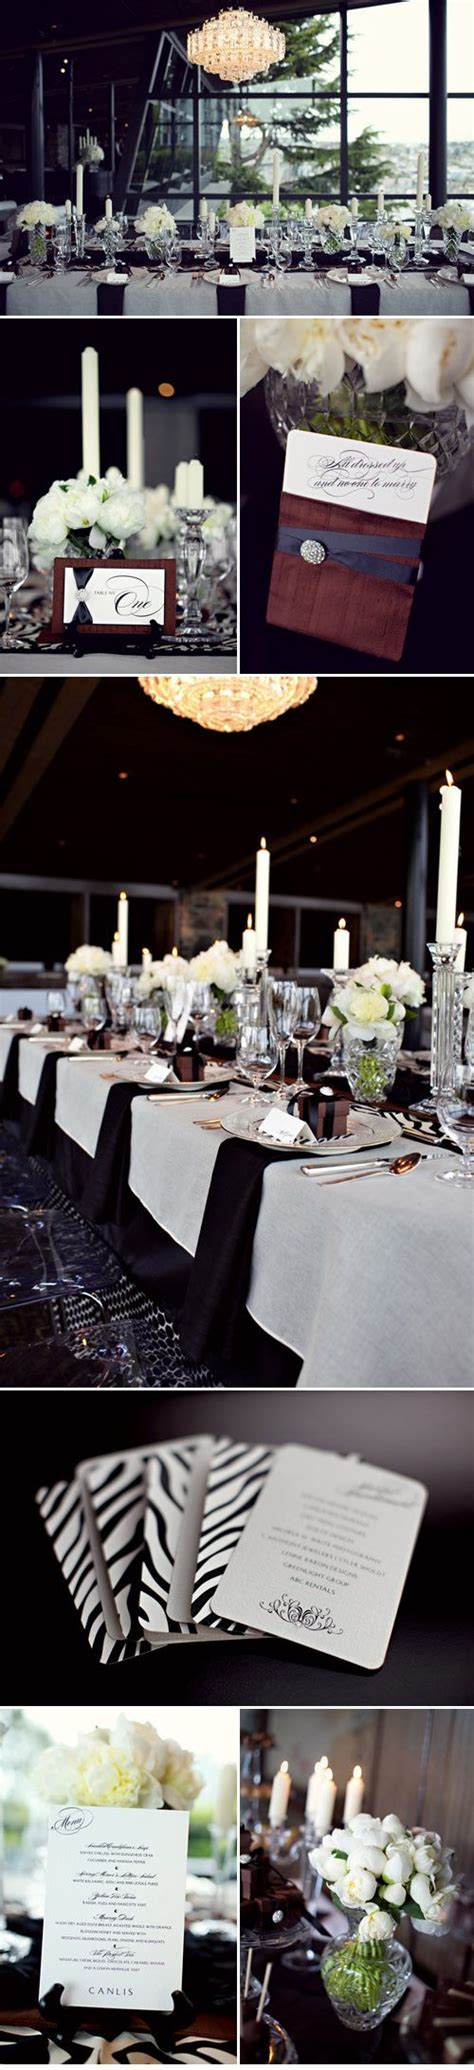 Swanky and Elegant Wedding Style at Canlis   Black and